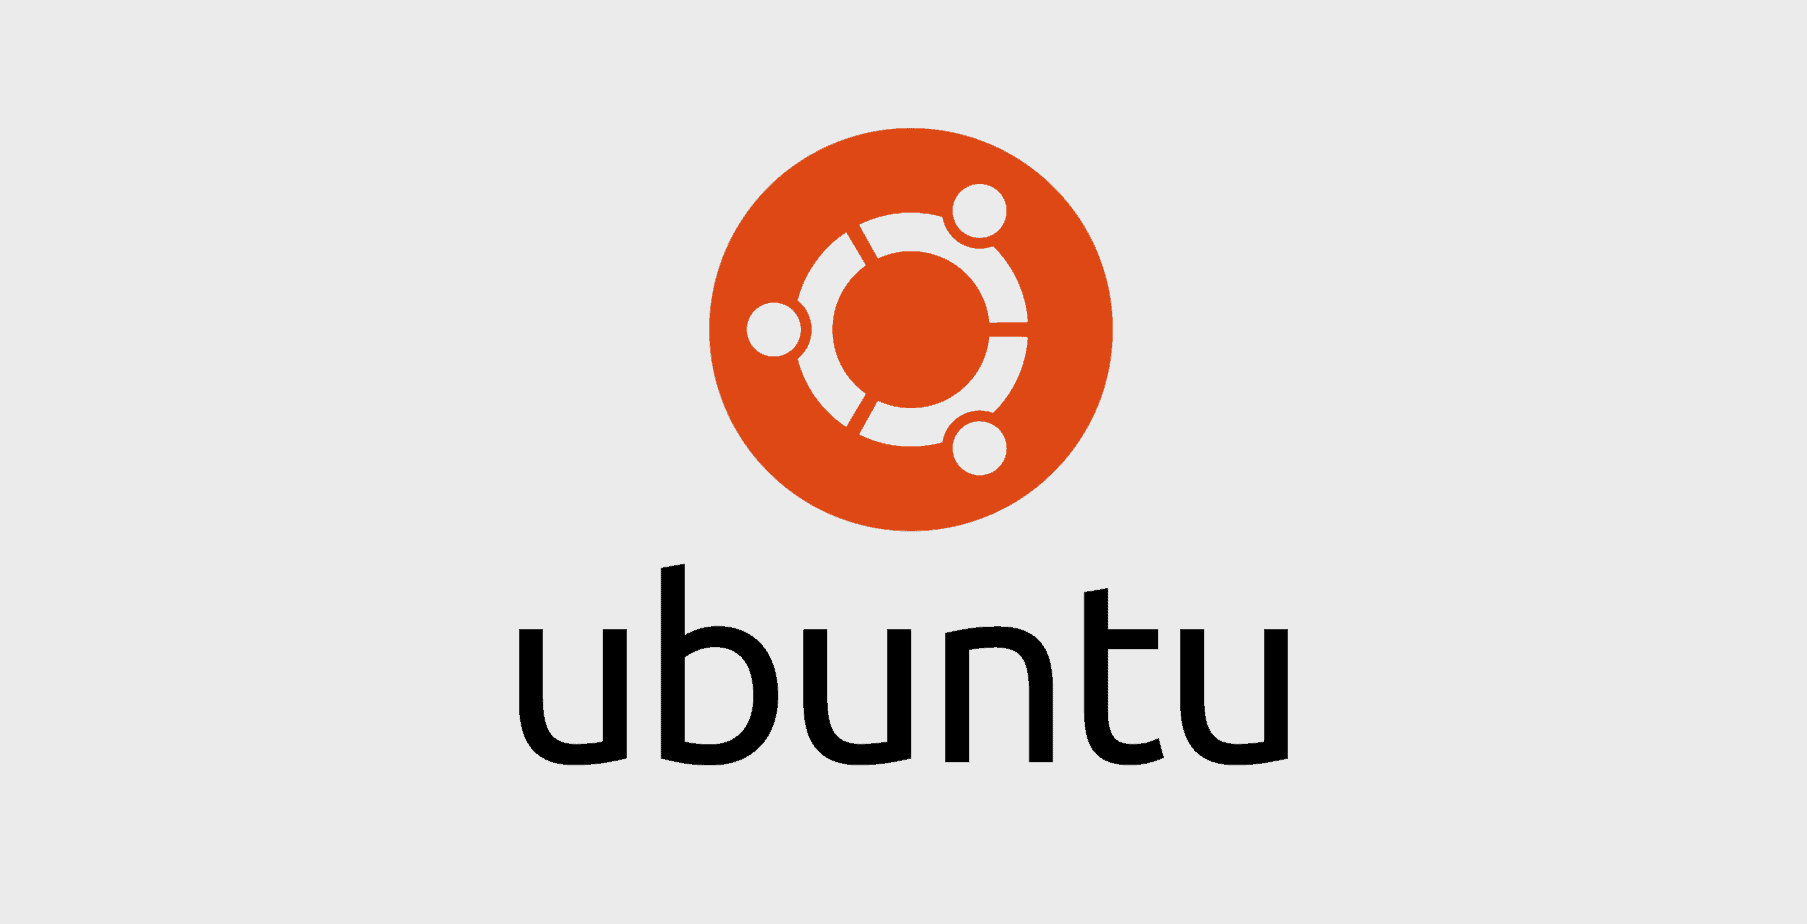 How to Install Ubuntu on Windows 10 With DUAL Boot | GadgetGang